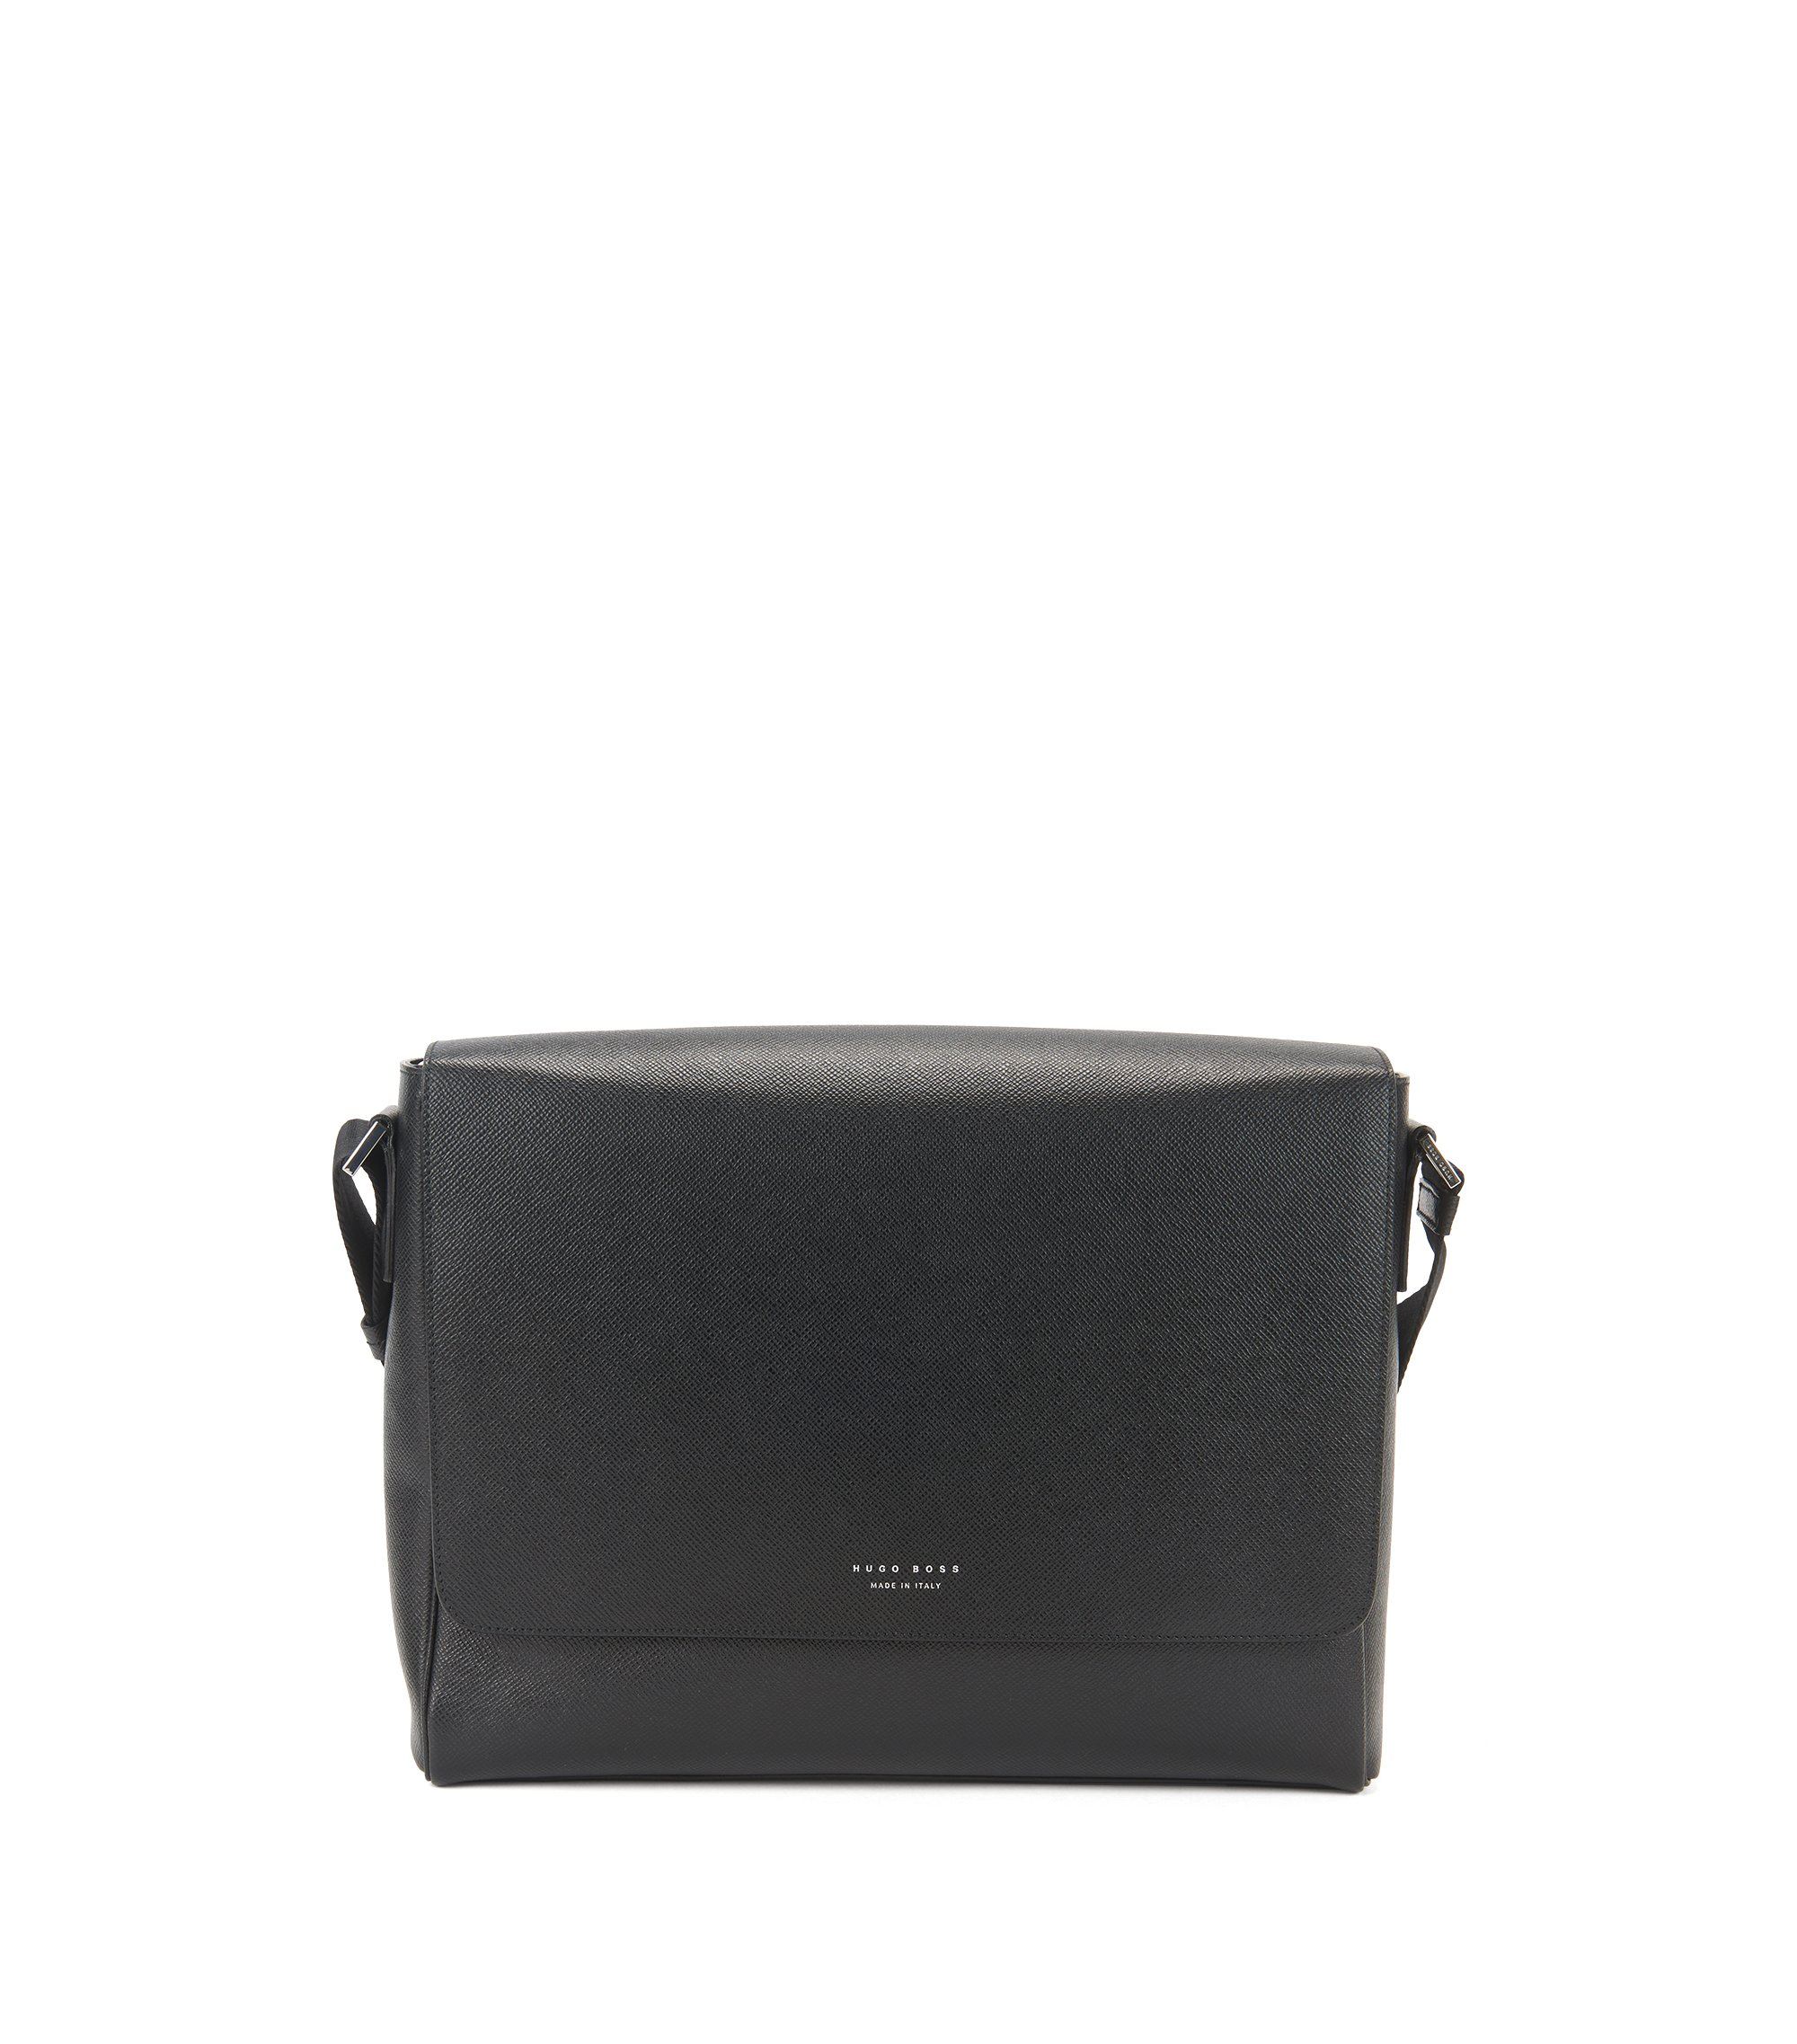 Signature Collection messenger bag in grained palmellato leather , Black